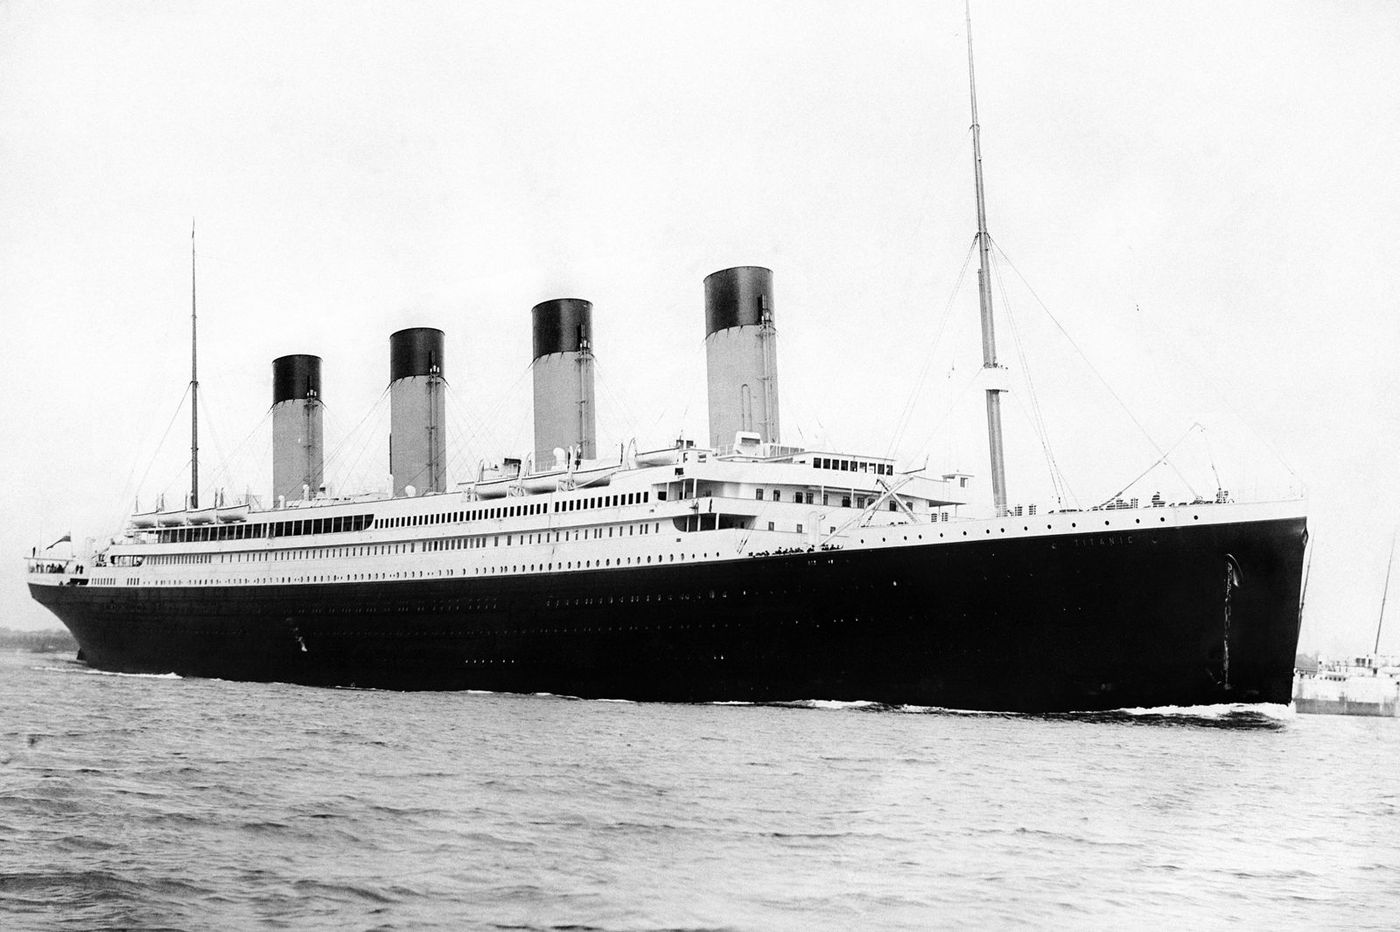 Plans to build Titanic replica back on track